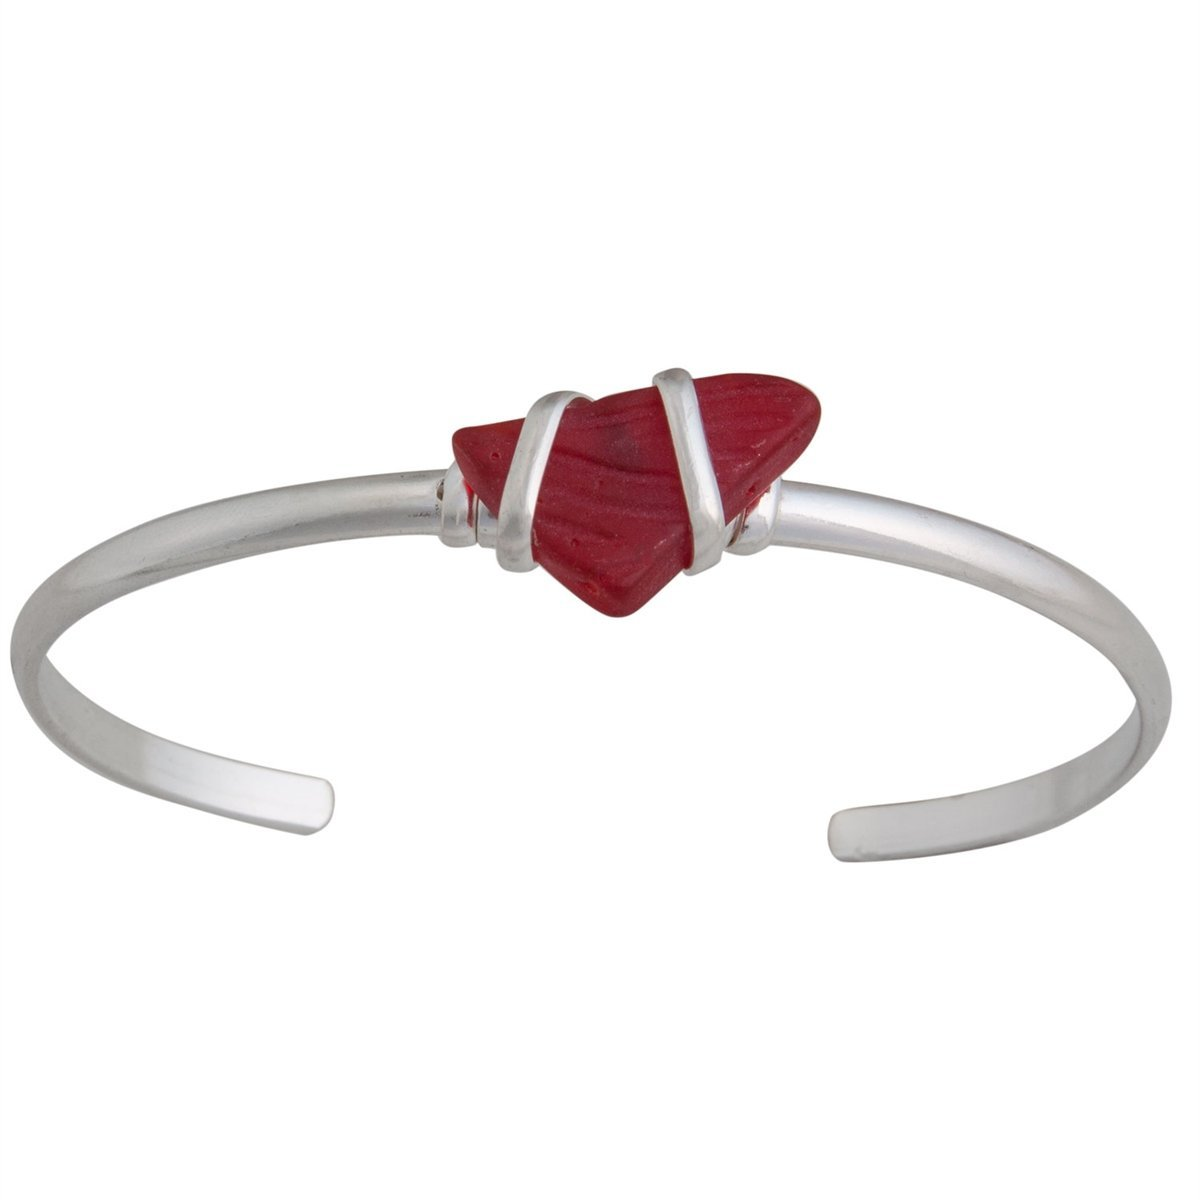 Alpaca Recycled Glass Mini Cuff - Red | Charles Albert Jewelry